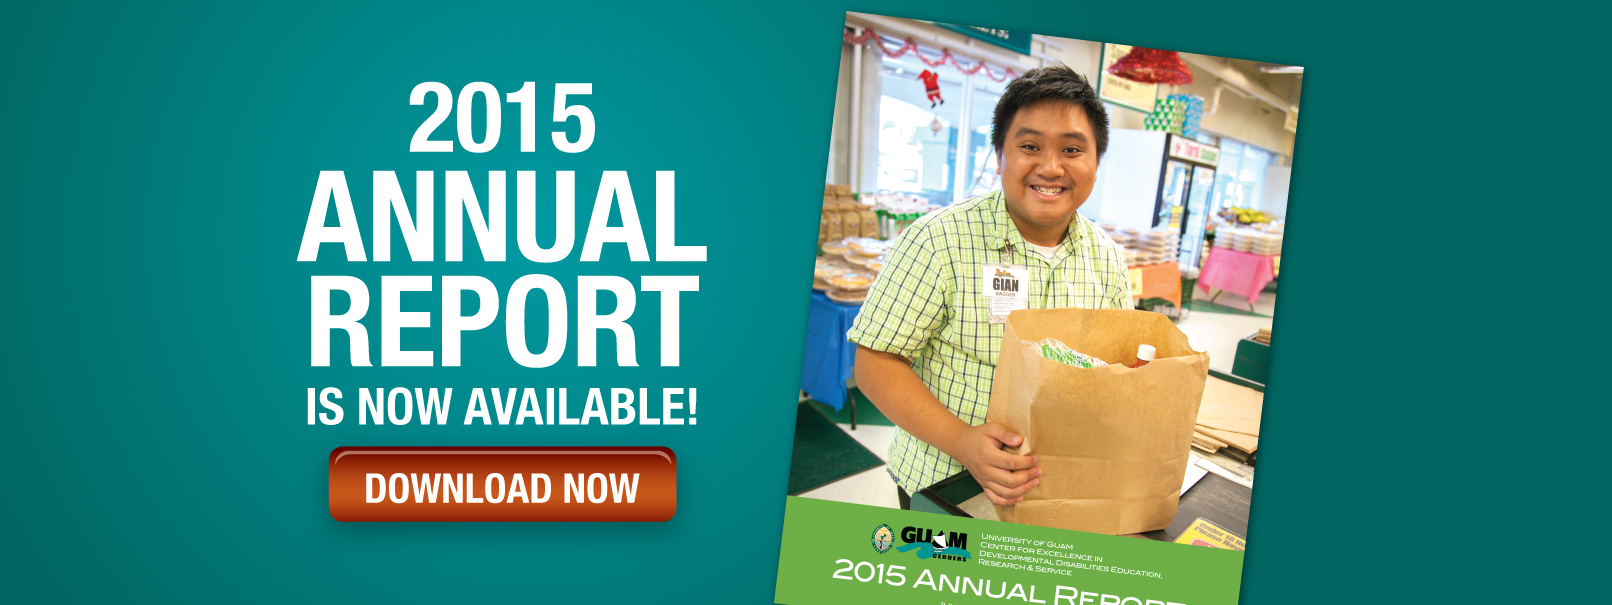 ANNUAL-REPORT-BANNER-2015